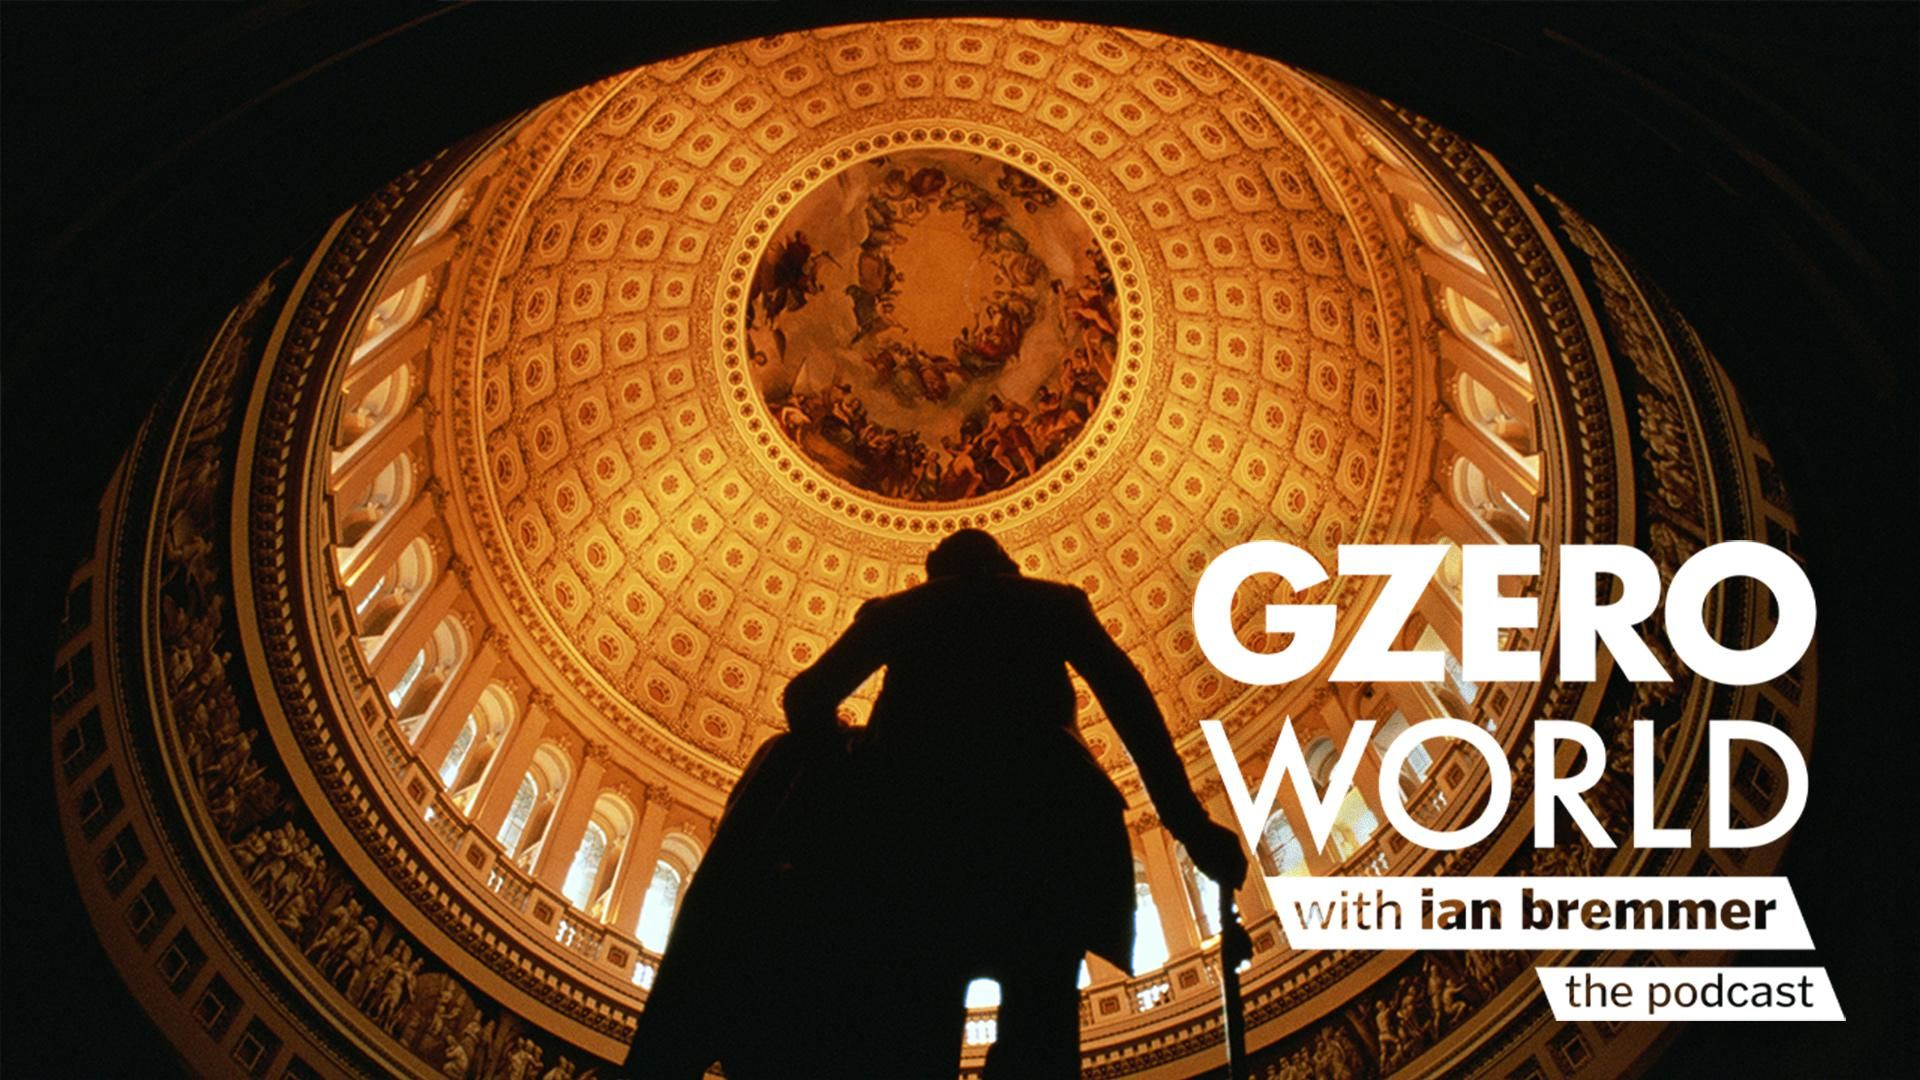 GZERO World Podcast: Can Democrats and Republicans agree on anything? Interior view of the US Capitol dome